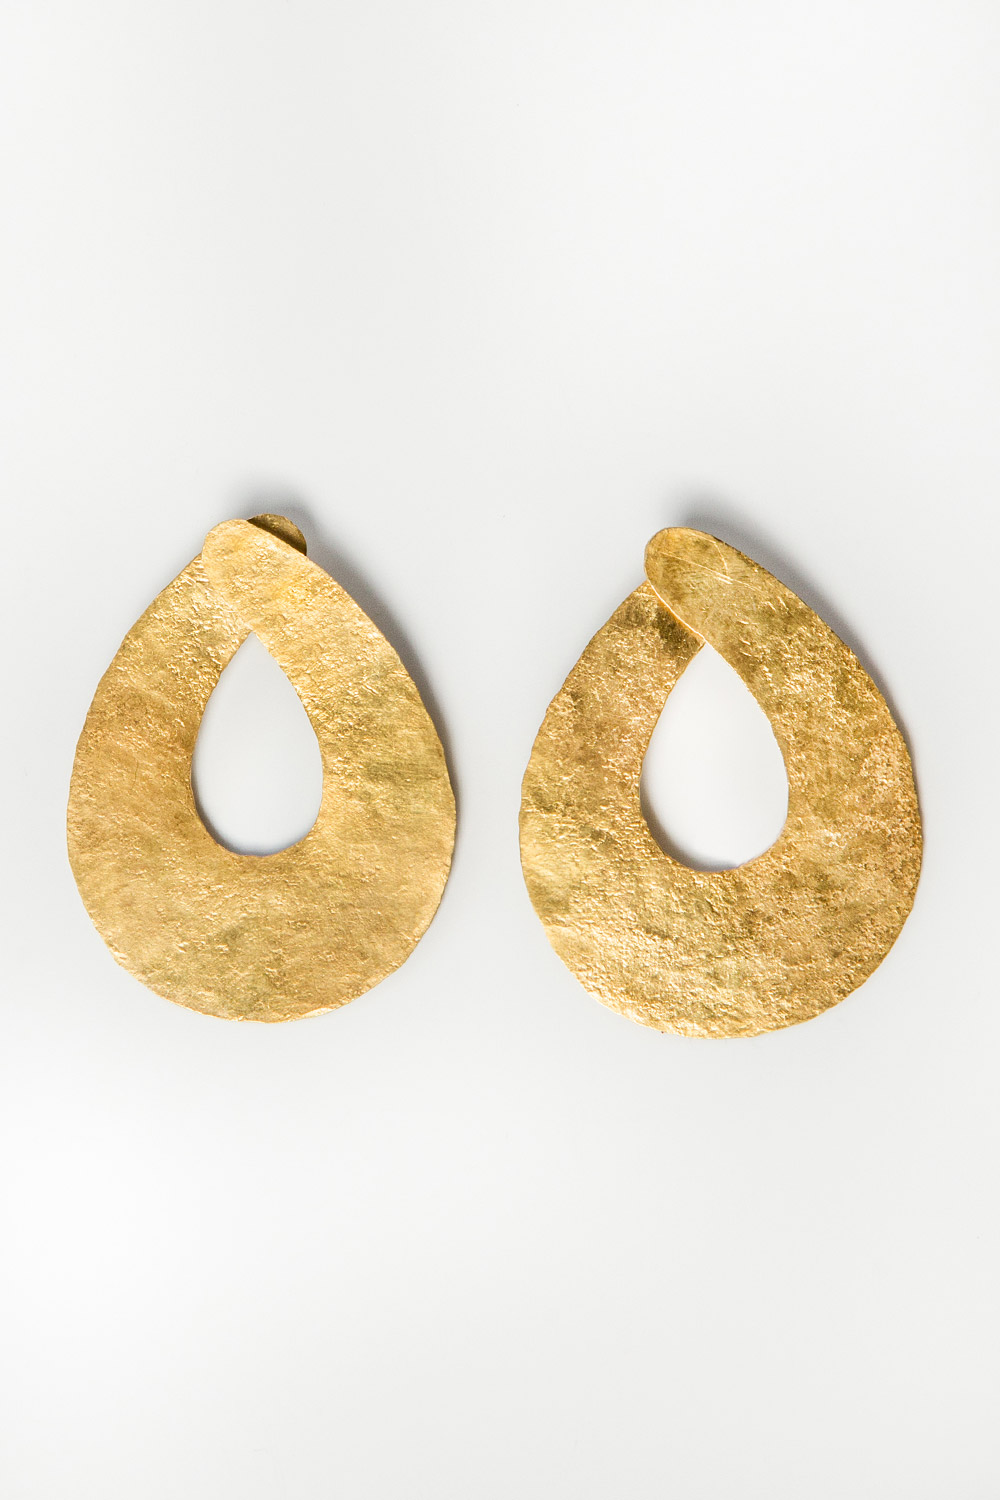 Philippine Oval Loops Brass Earrings  $595